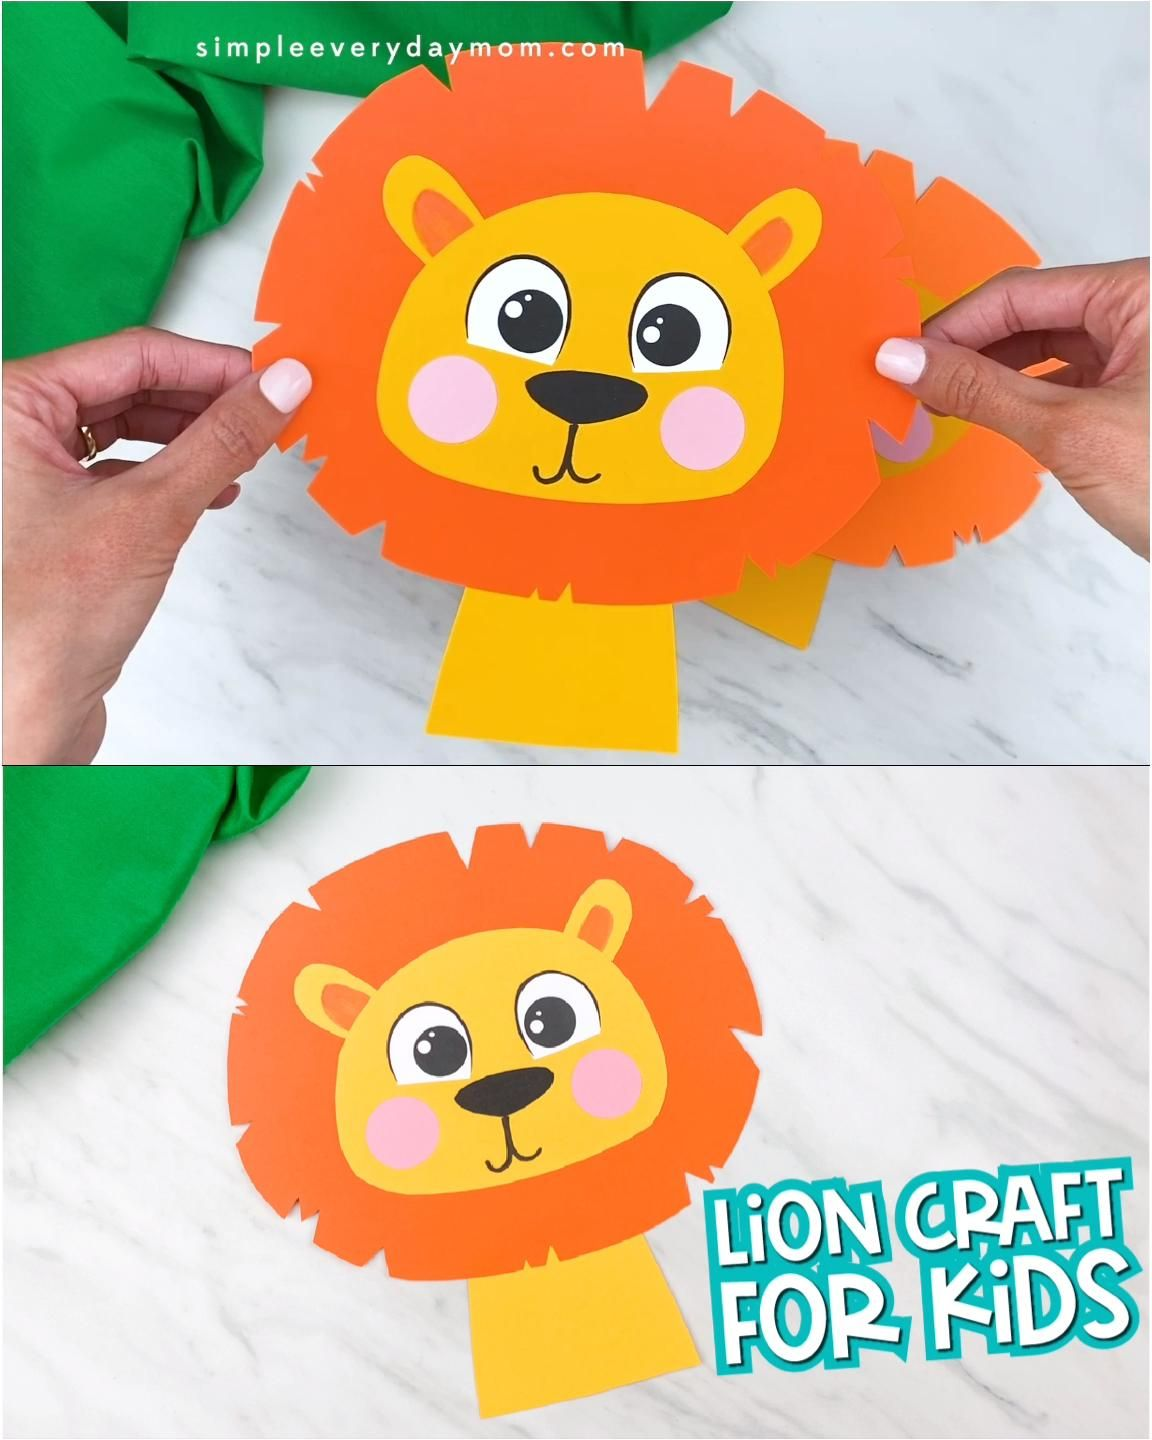 This easy lion craft for kids is a perfect activity to do for zoo animal themes, wild animal themes or jungle animal themes! It comes with a free printable template and is great for creating with preschool, kindergarten and elementary children.   #simpleeverydaymom #lioncrafts #animalcrafts